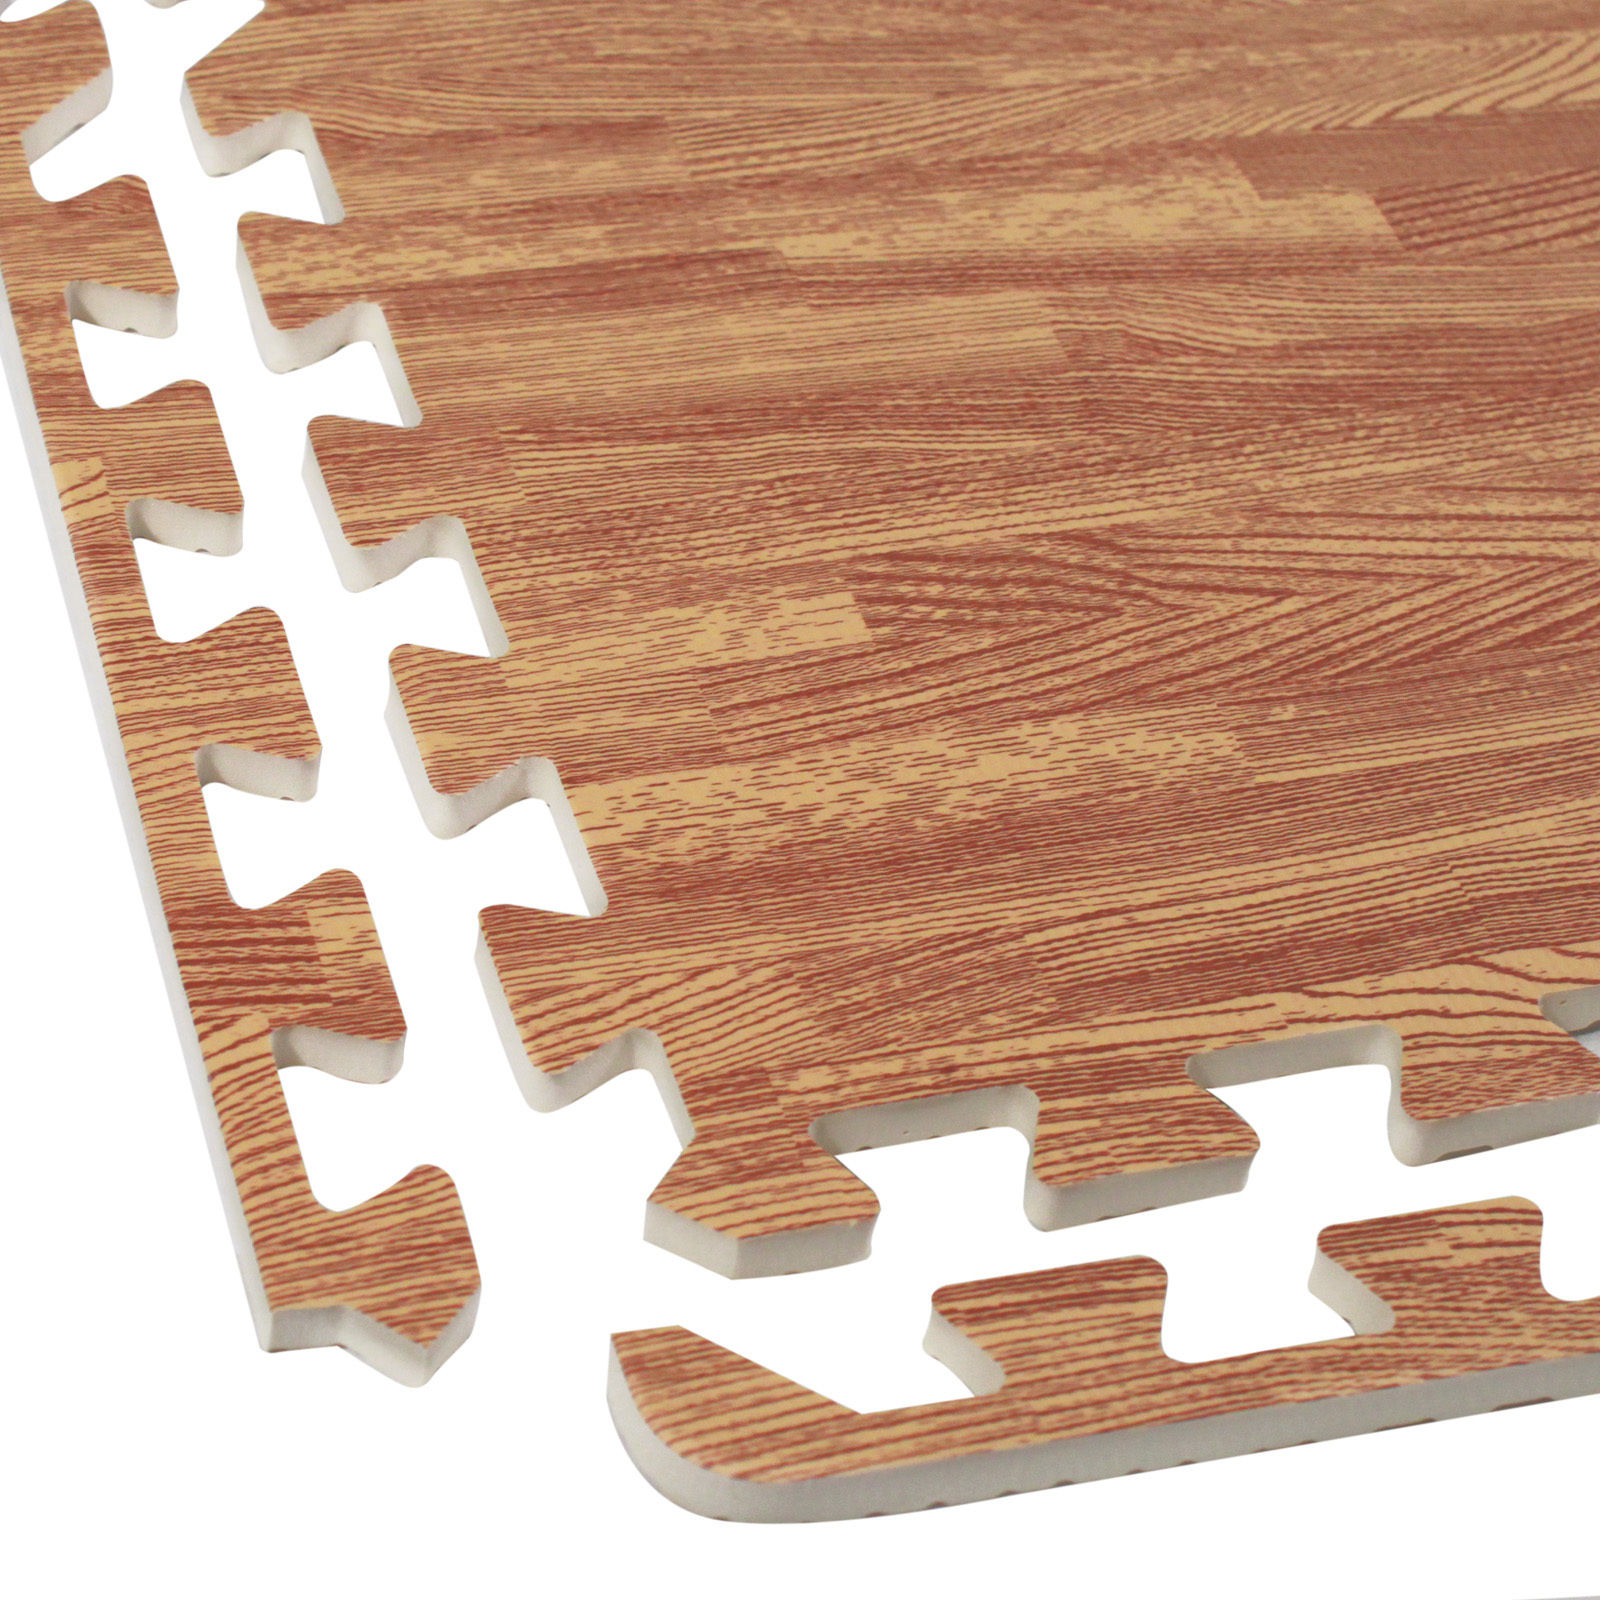 Wood Floor Padding Wood Foam Floor: Interlocking EVA Foam Wood Grain Puzzle Mat Floor Tiles 64